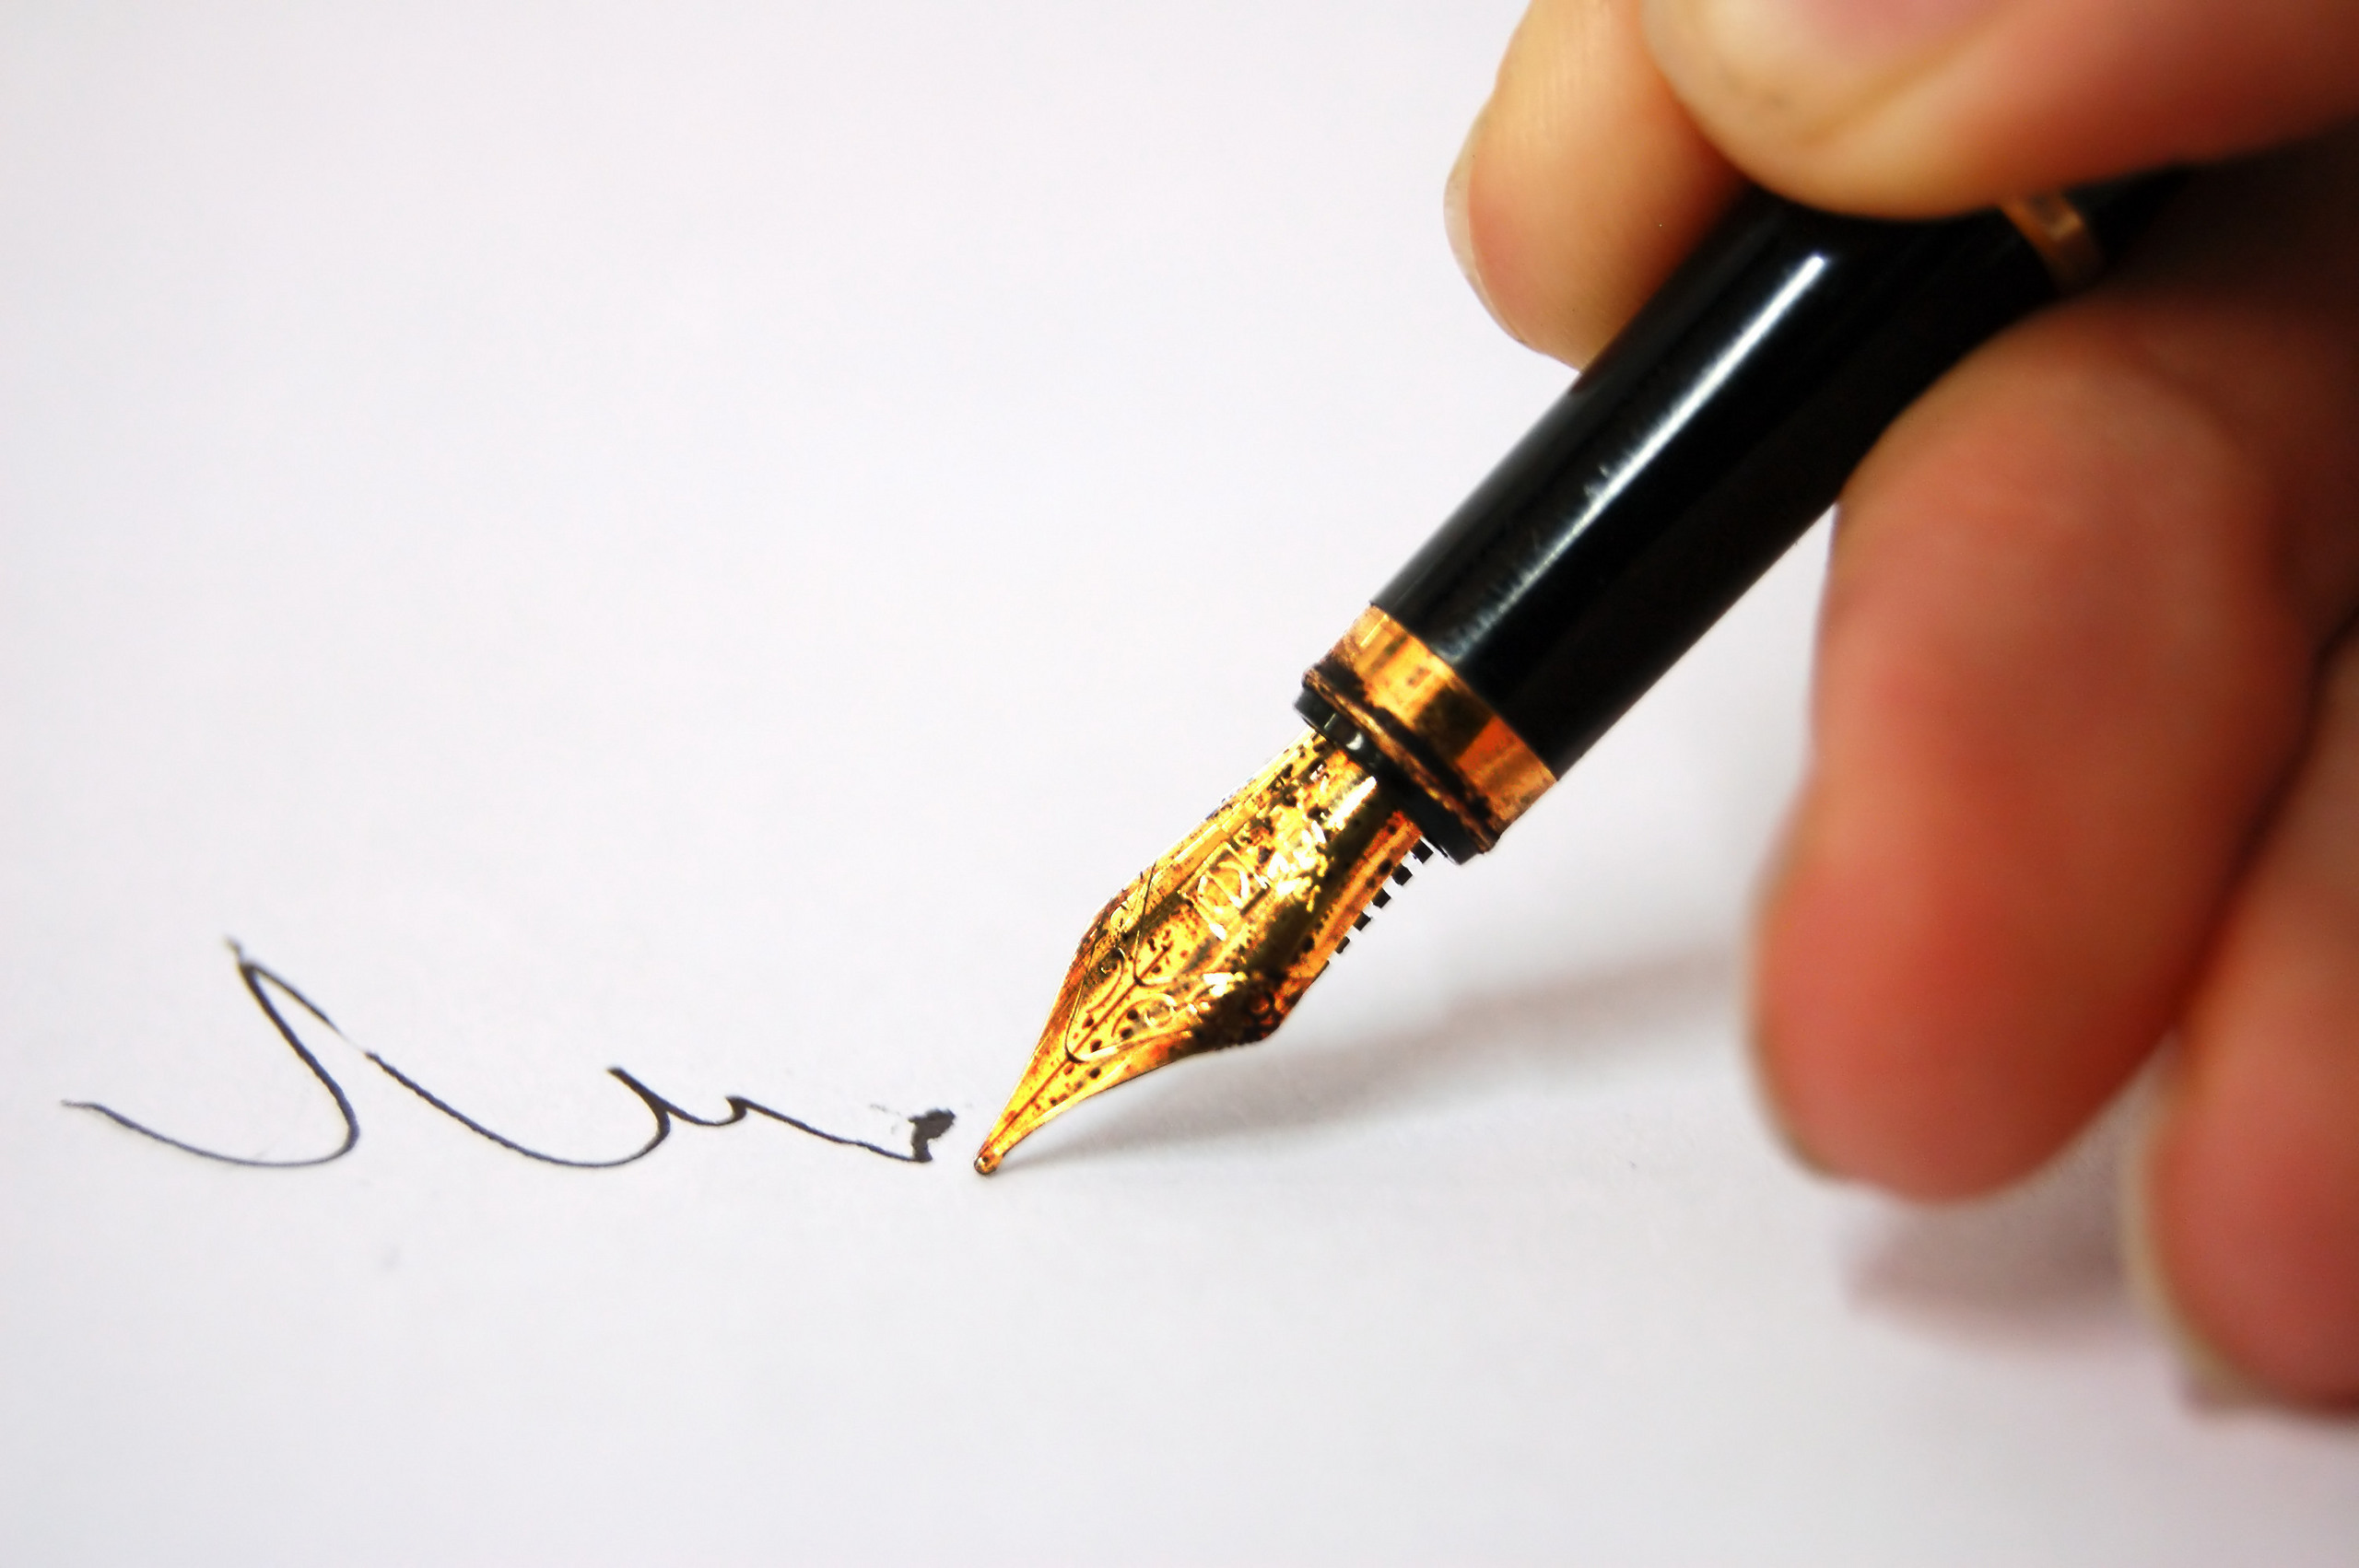 Handwriting Analysis Signature: How to Make a Good Signature